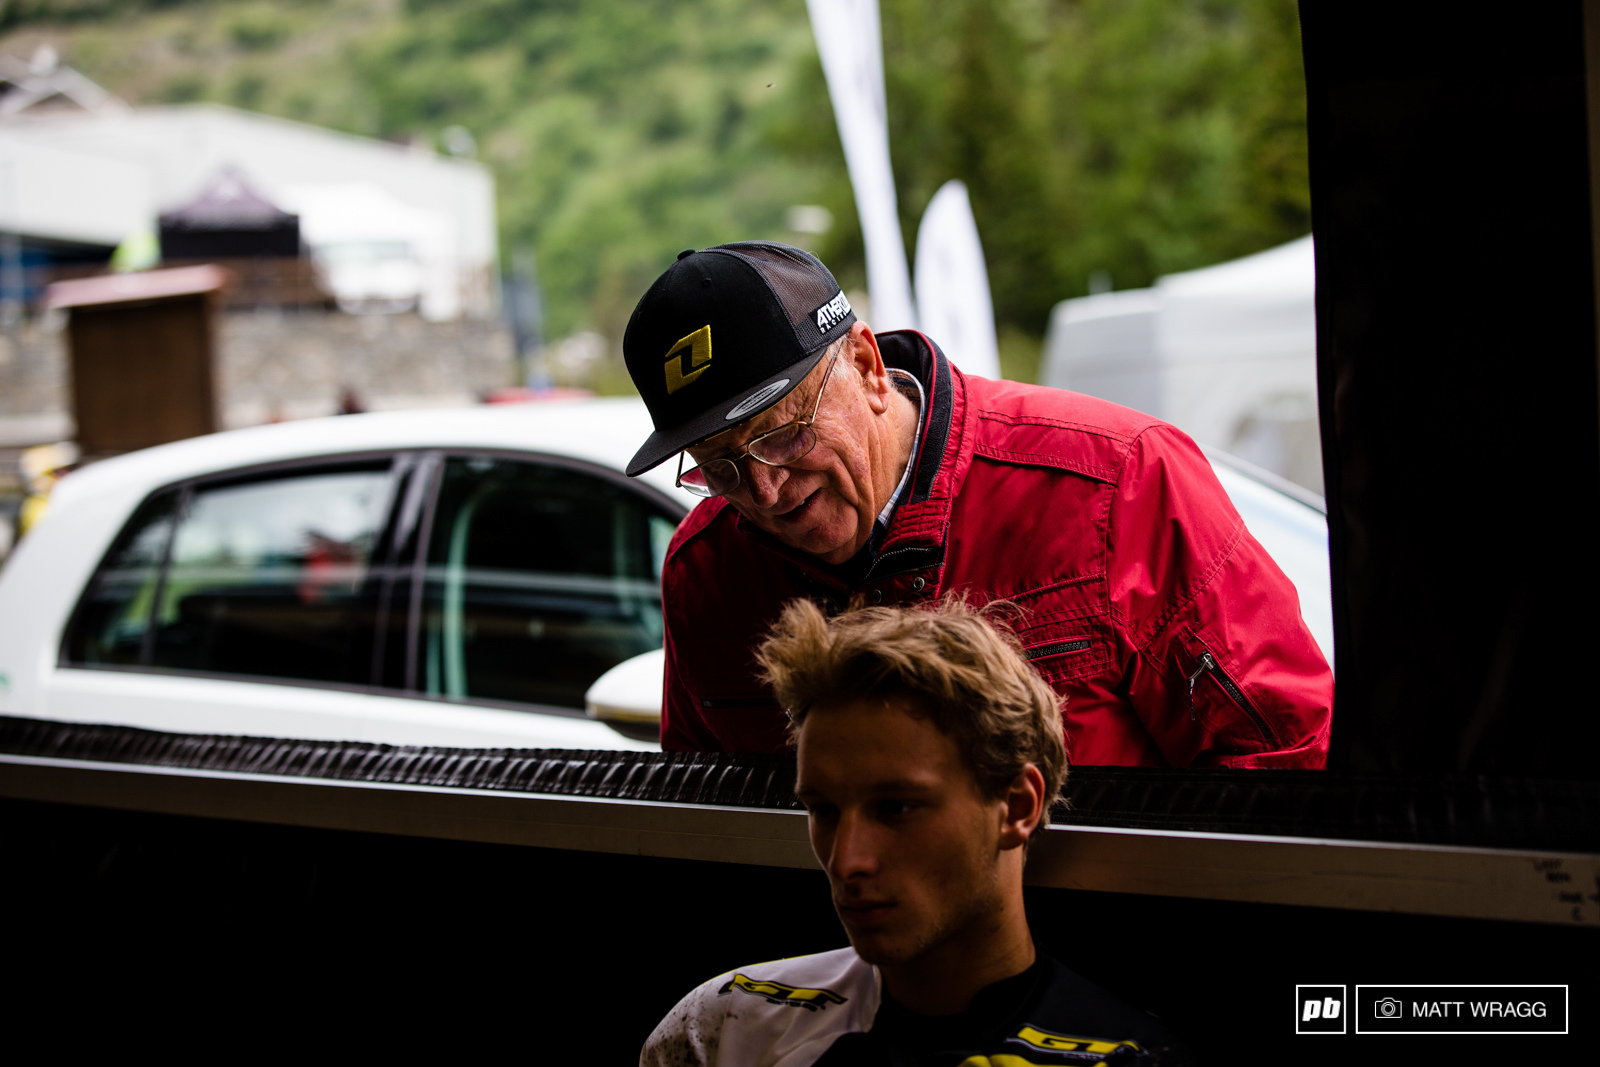 The entire Maes clan is here in La Thuile this weekend, including his grandfather who dropped by the pits to check on him before PS6.